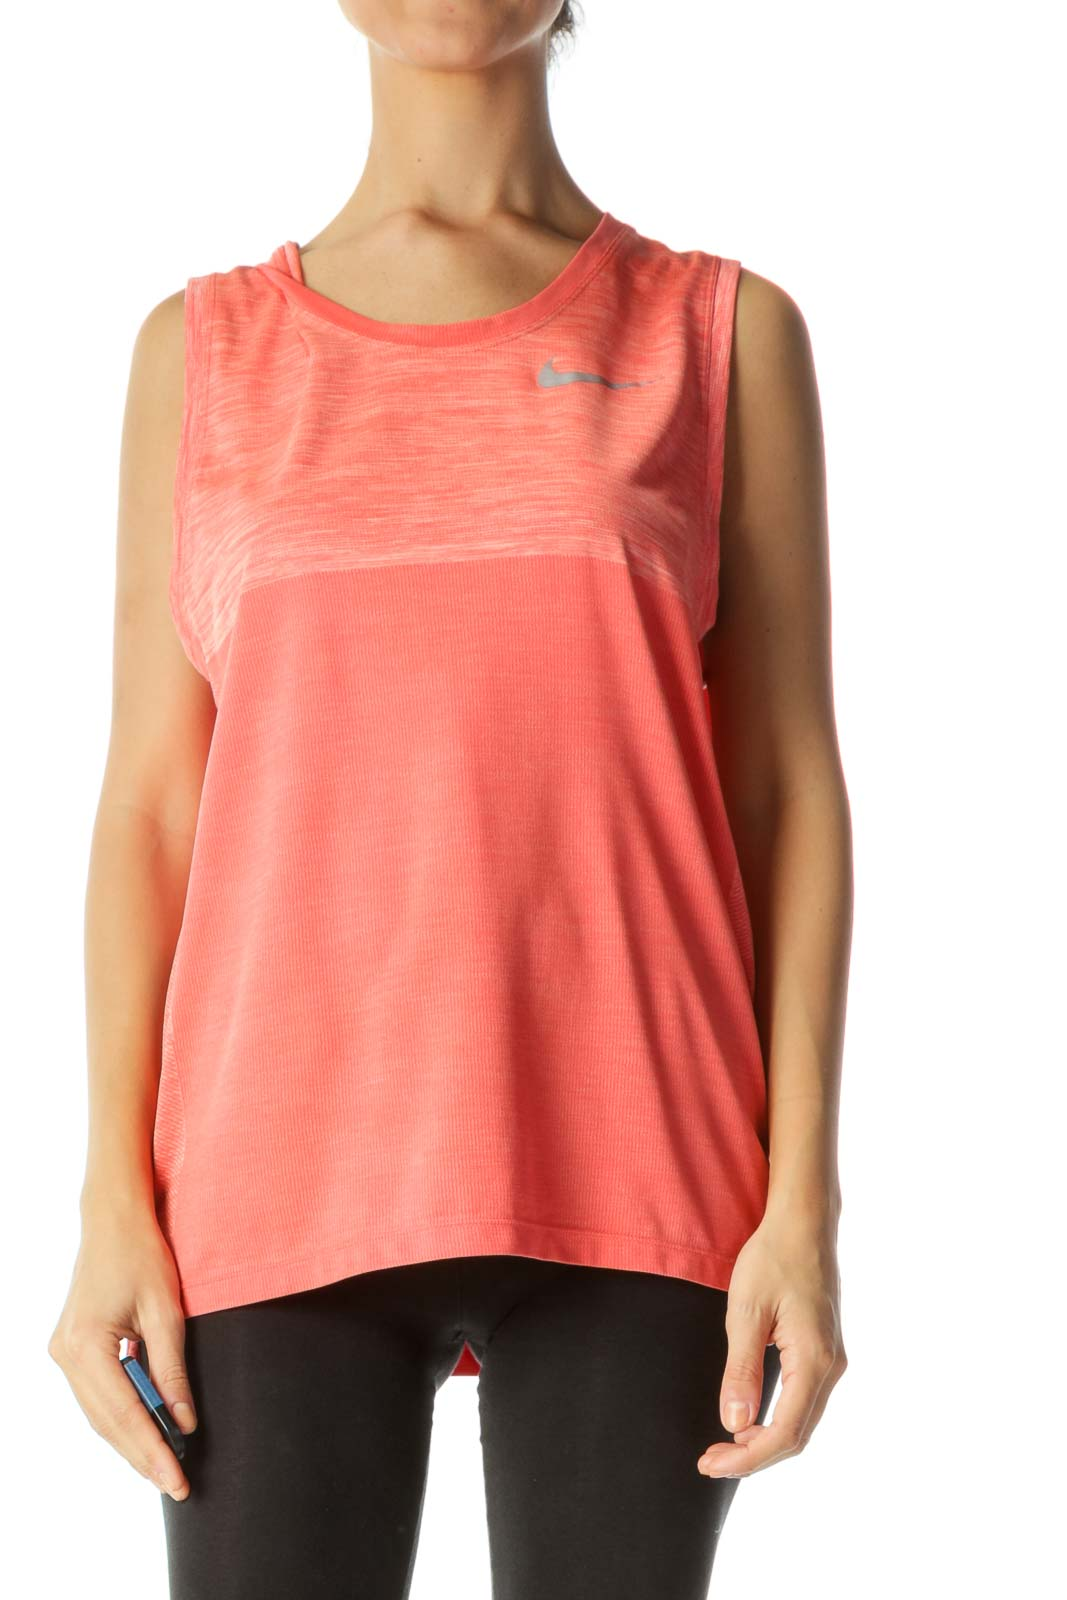 Heathered Orange Thick-Strap Active-Wear Tank